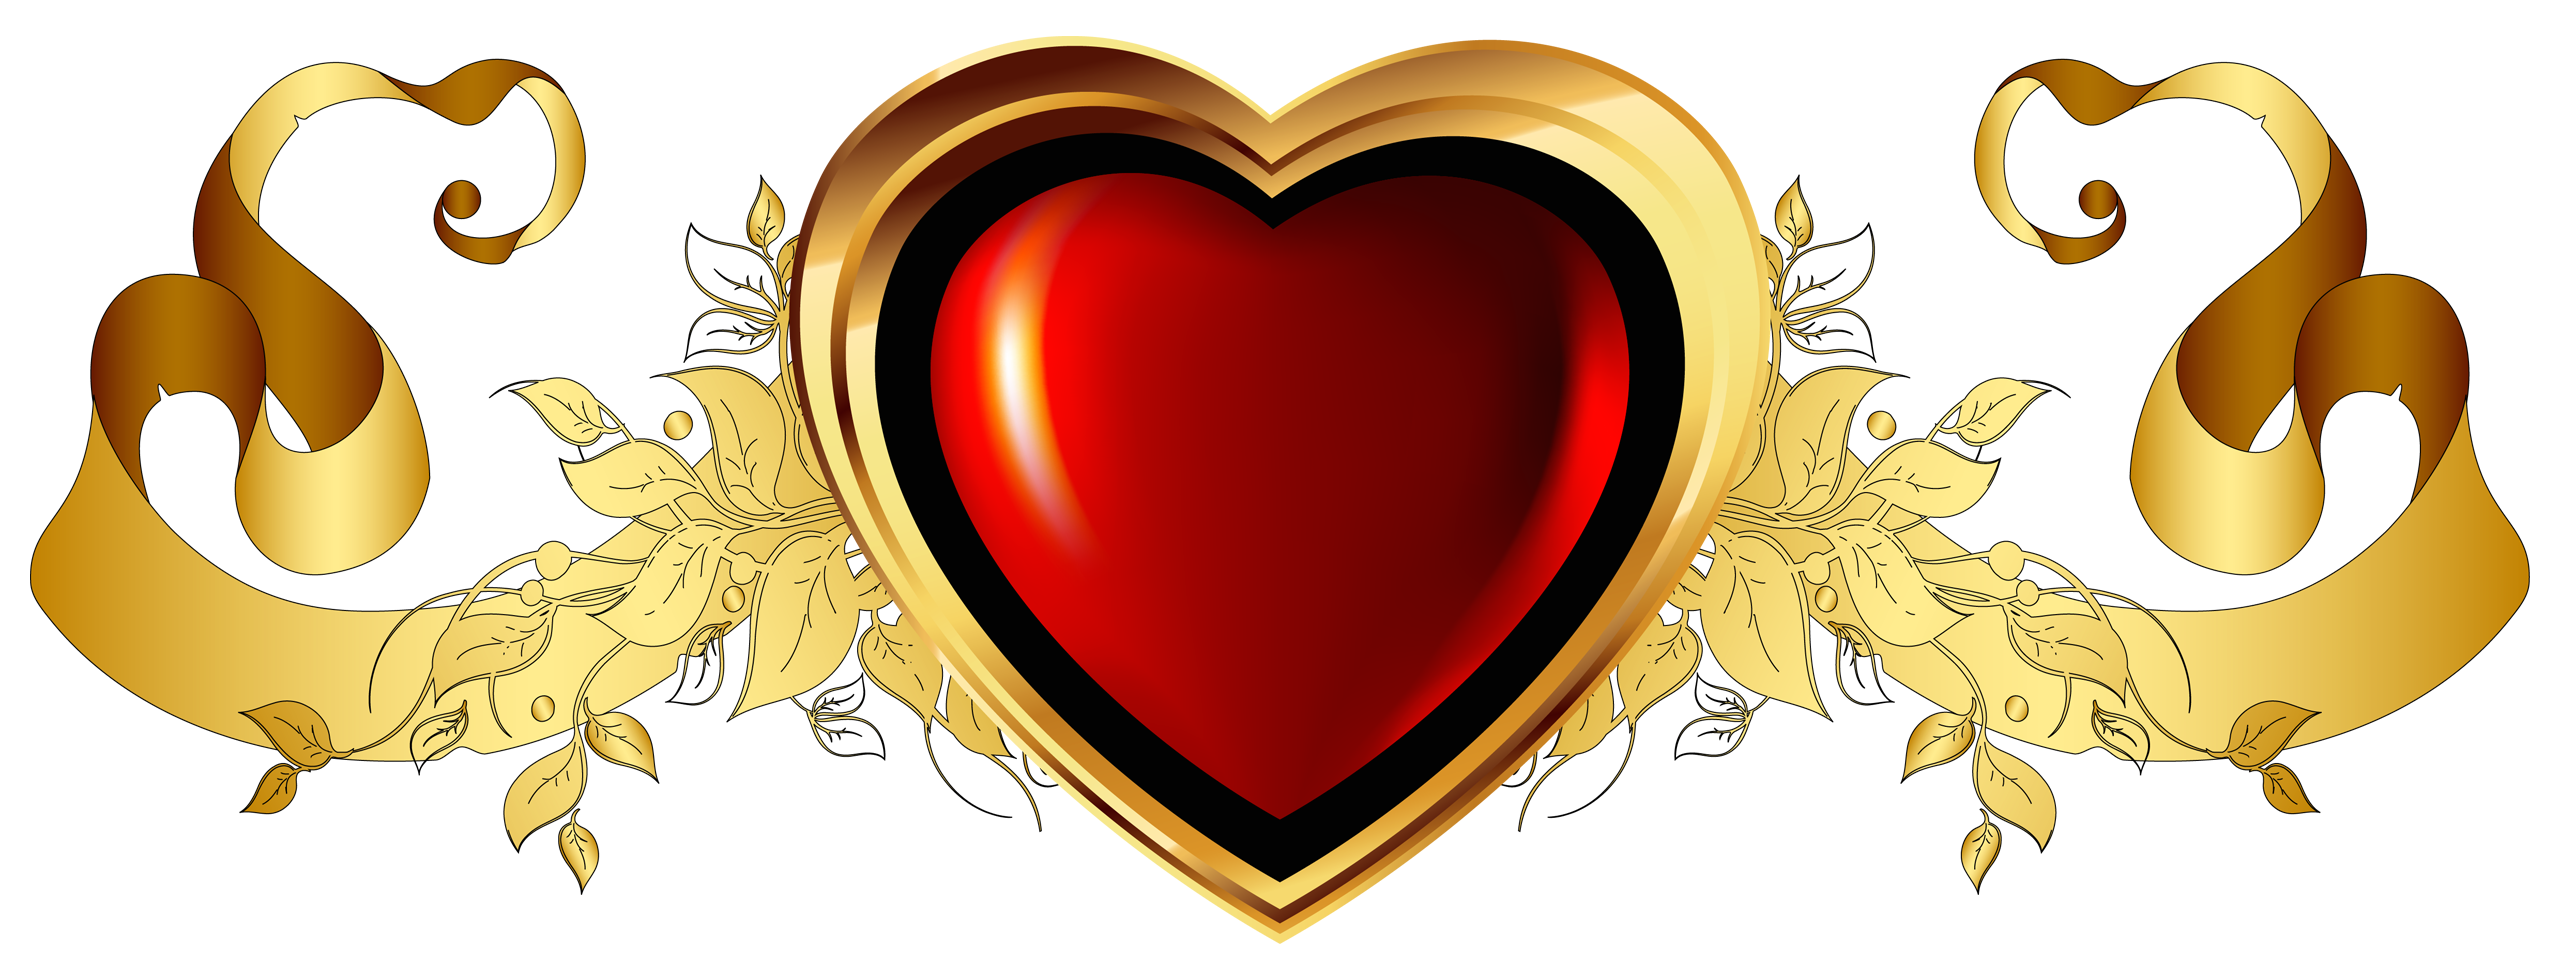 Gold heart clipart free download best glod image transparent Large Red Heart with Gold Banner Element Clipart | Gallery ... image transparent